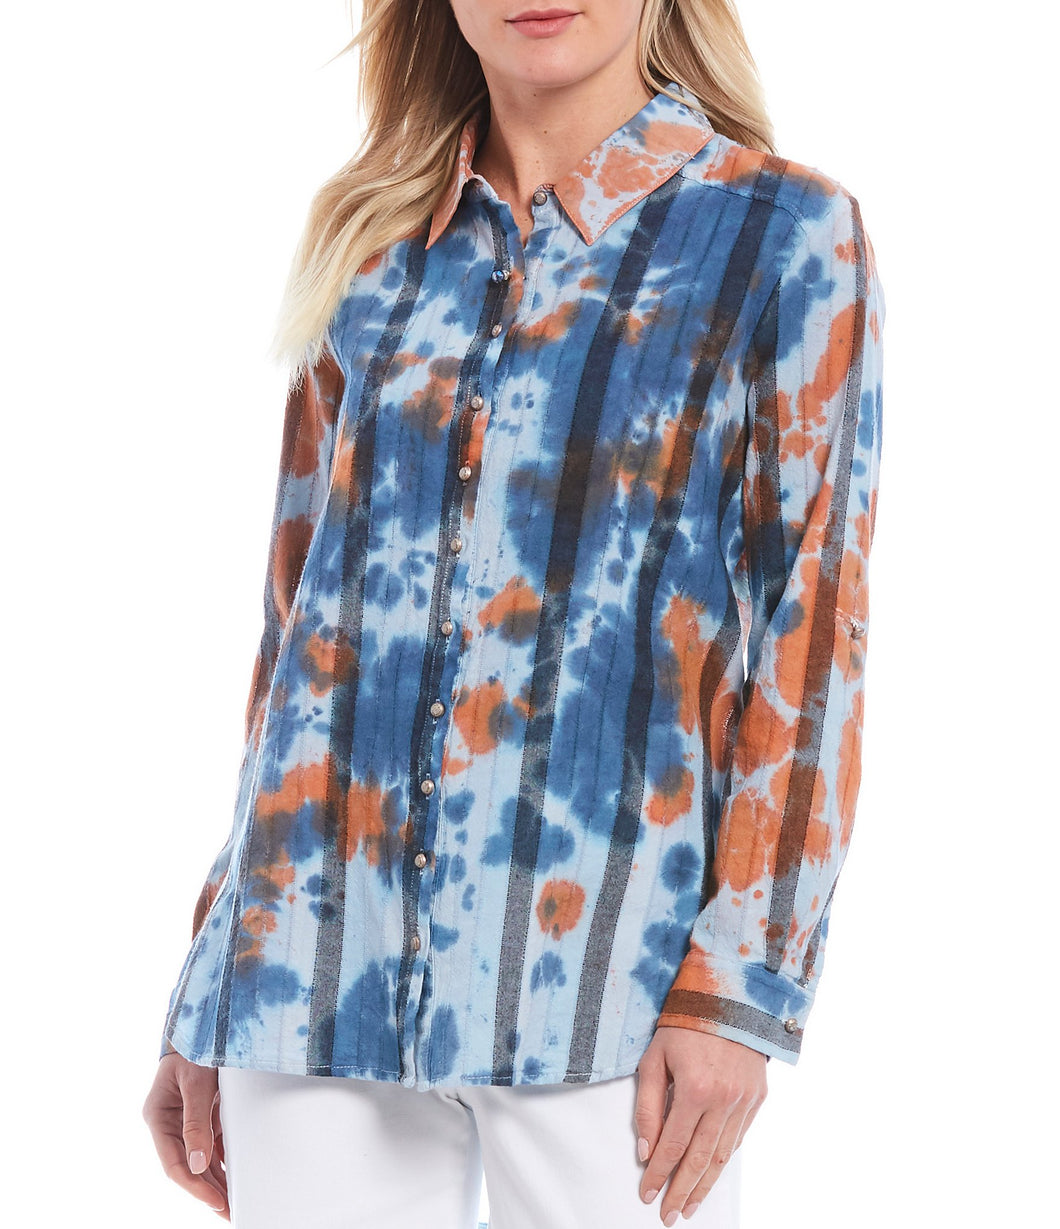 Pacific Crest Cotton Blend Tie-Dye Shirt